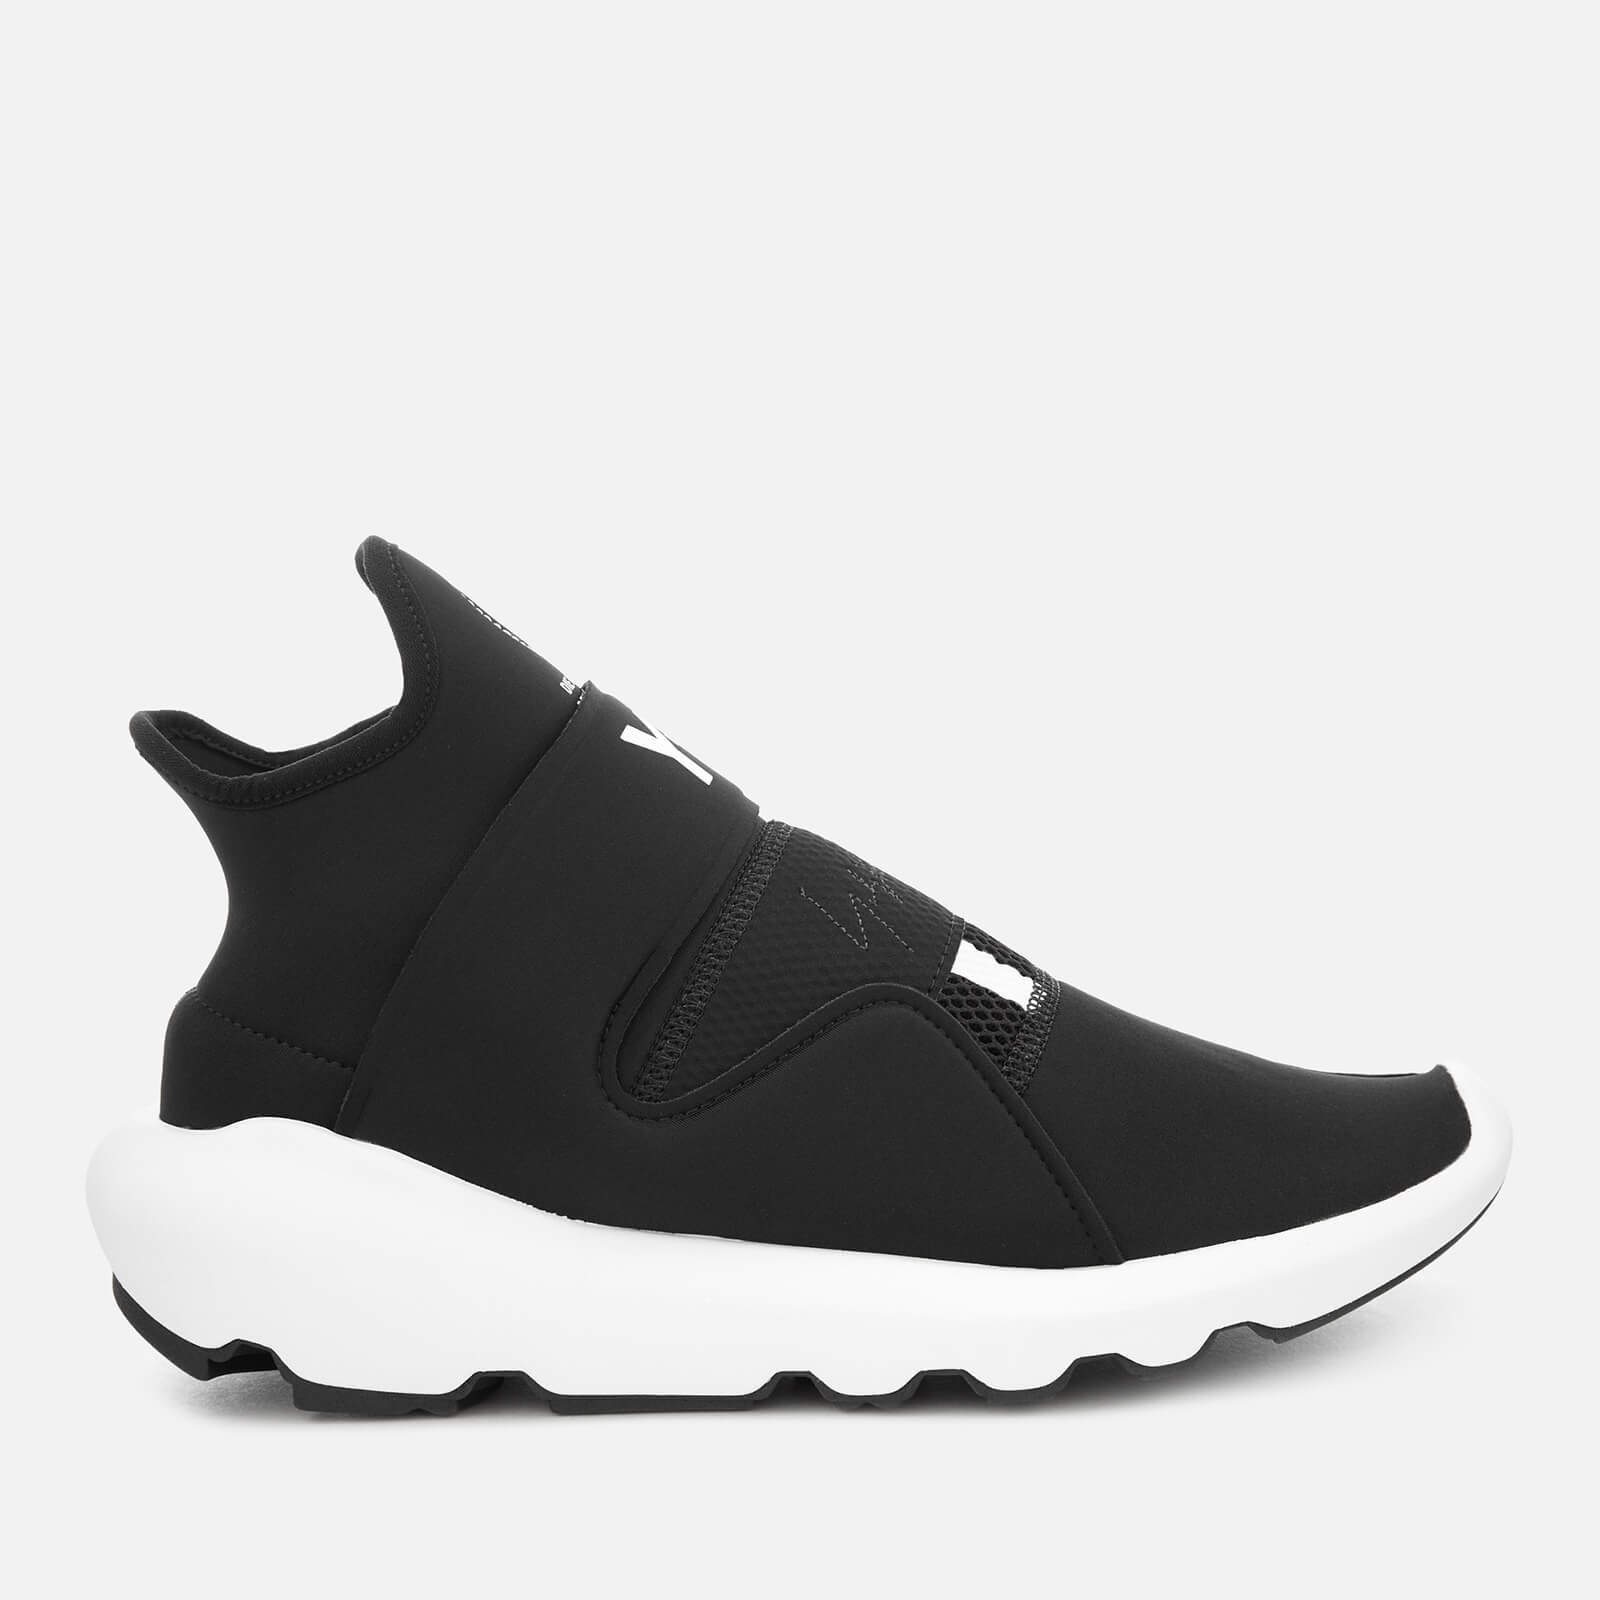 db19a77899b4c Y-3 Men s Suberou Trainers - Black Y3 - Free UK Delivery over £50